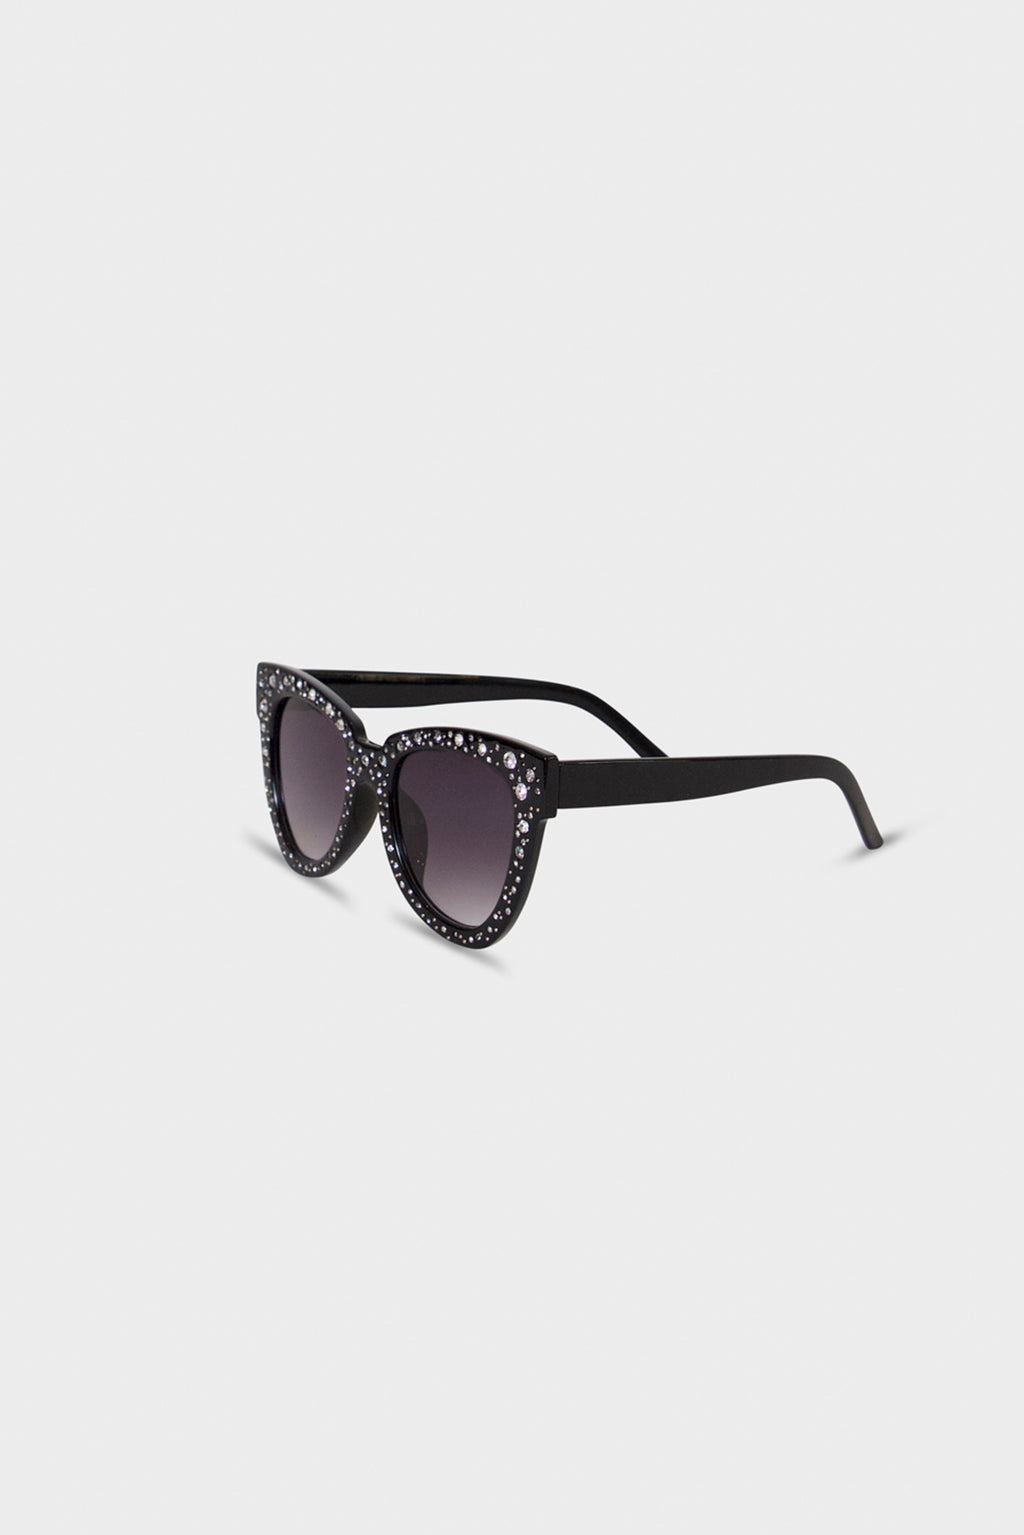 Black Rhinestone Sunglasses